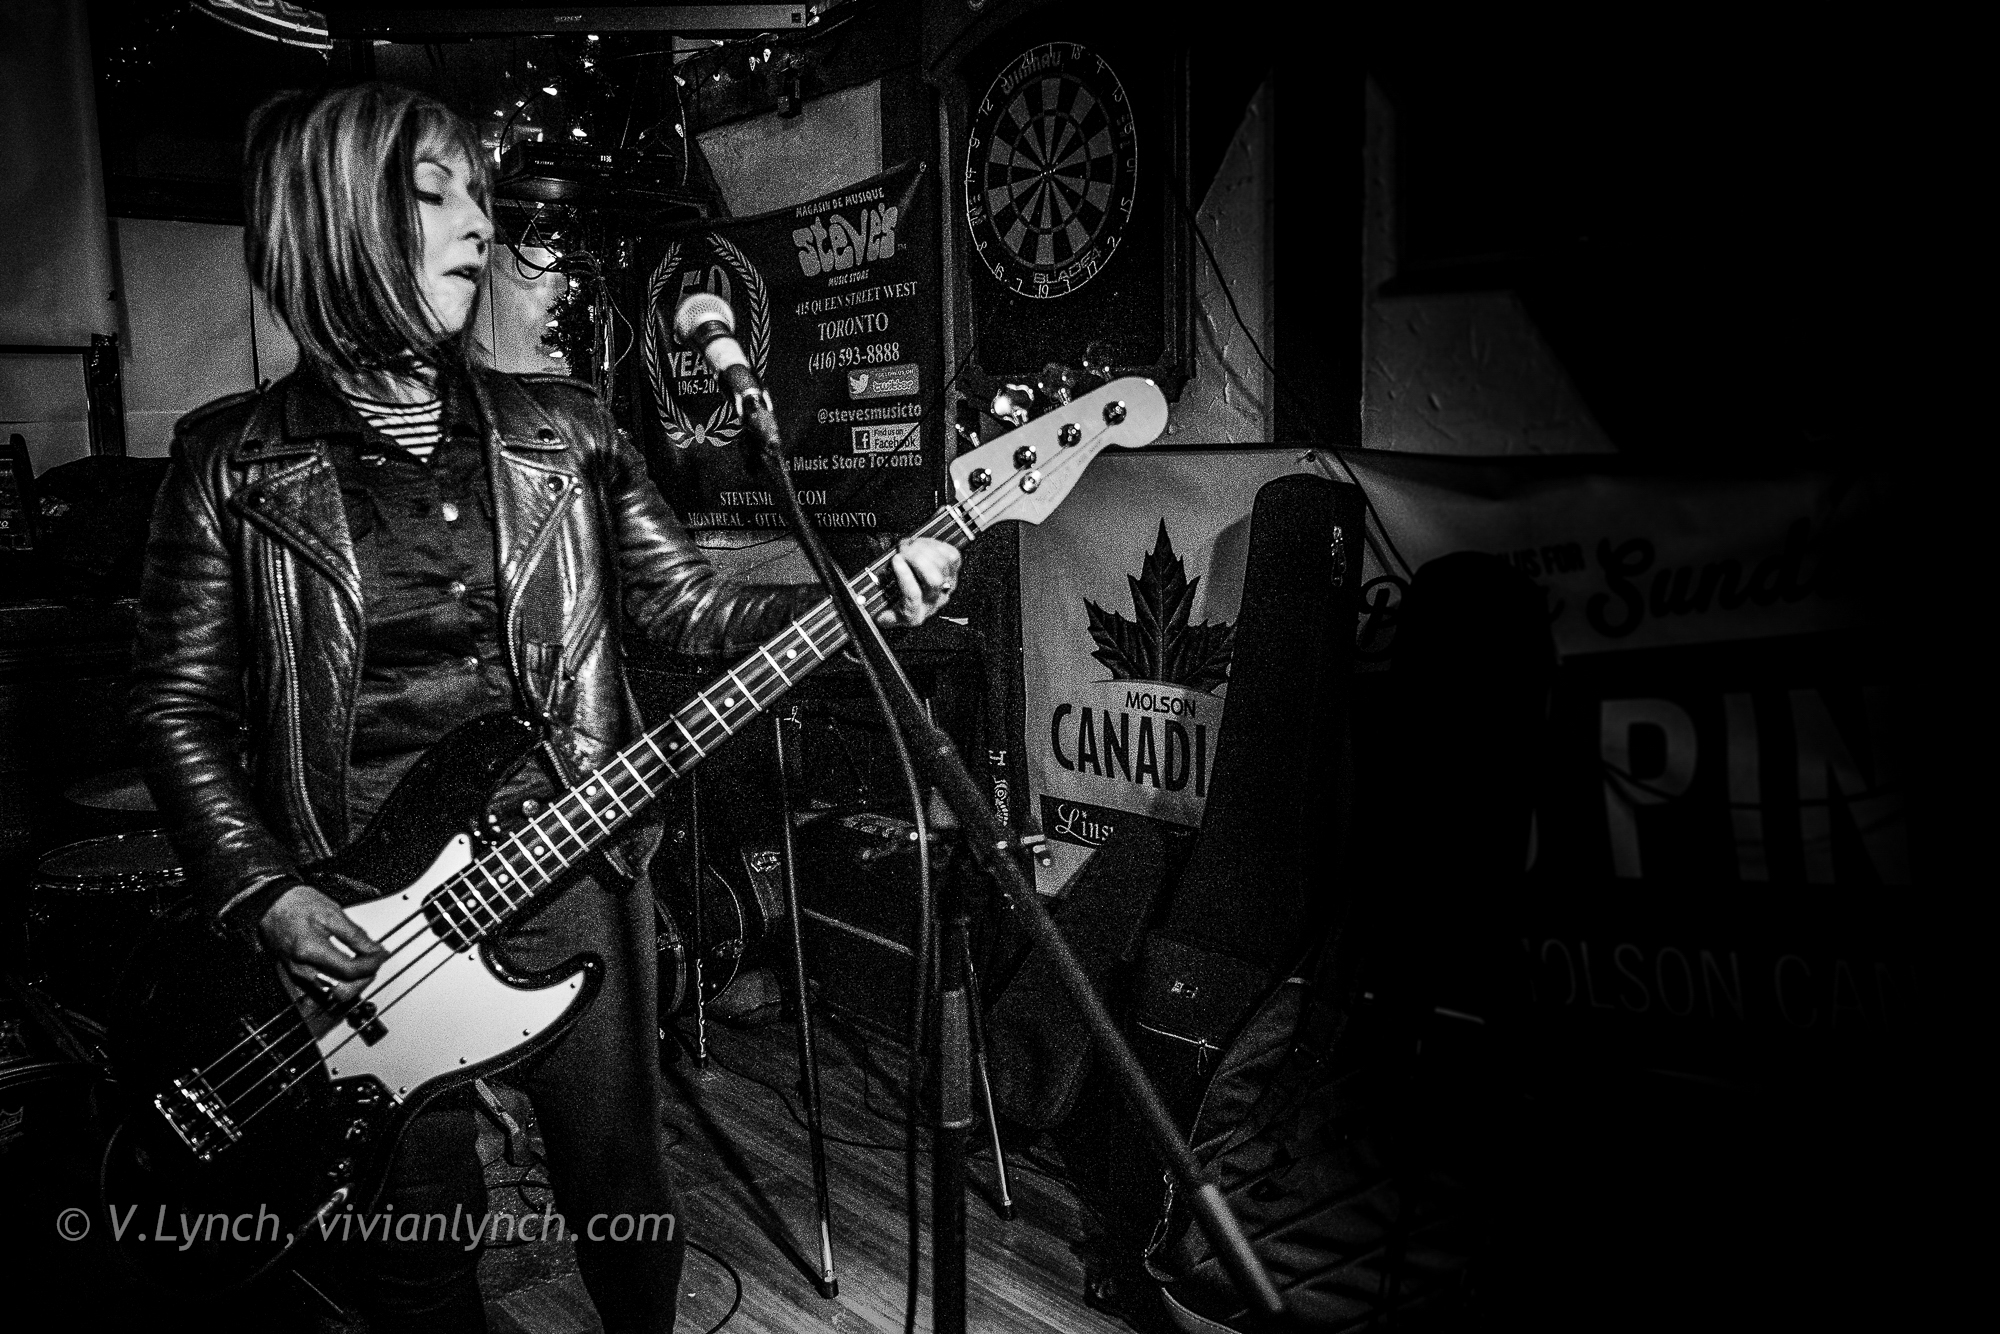 Cynthia Ross on bass, B-Girls @ The Linsmore Tavern, Toronto. (Nikon D7200, 20mm, 1/160 f.2.8, 6400 ISO)